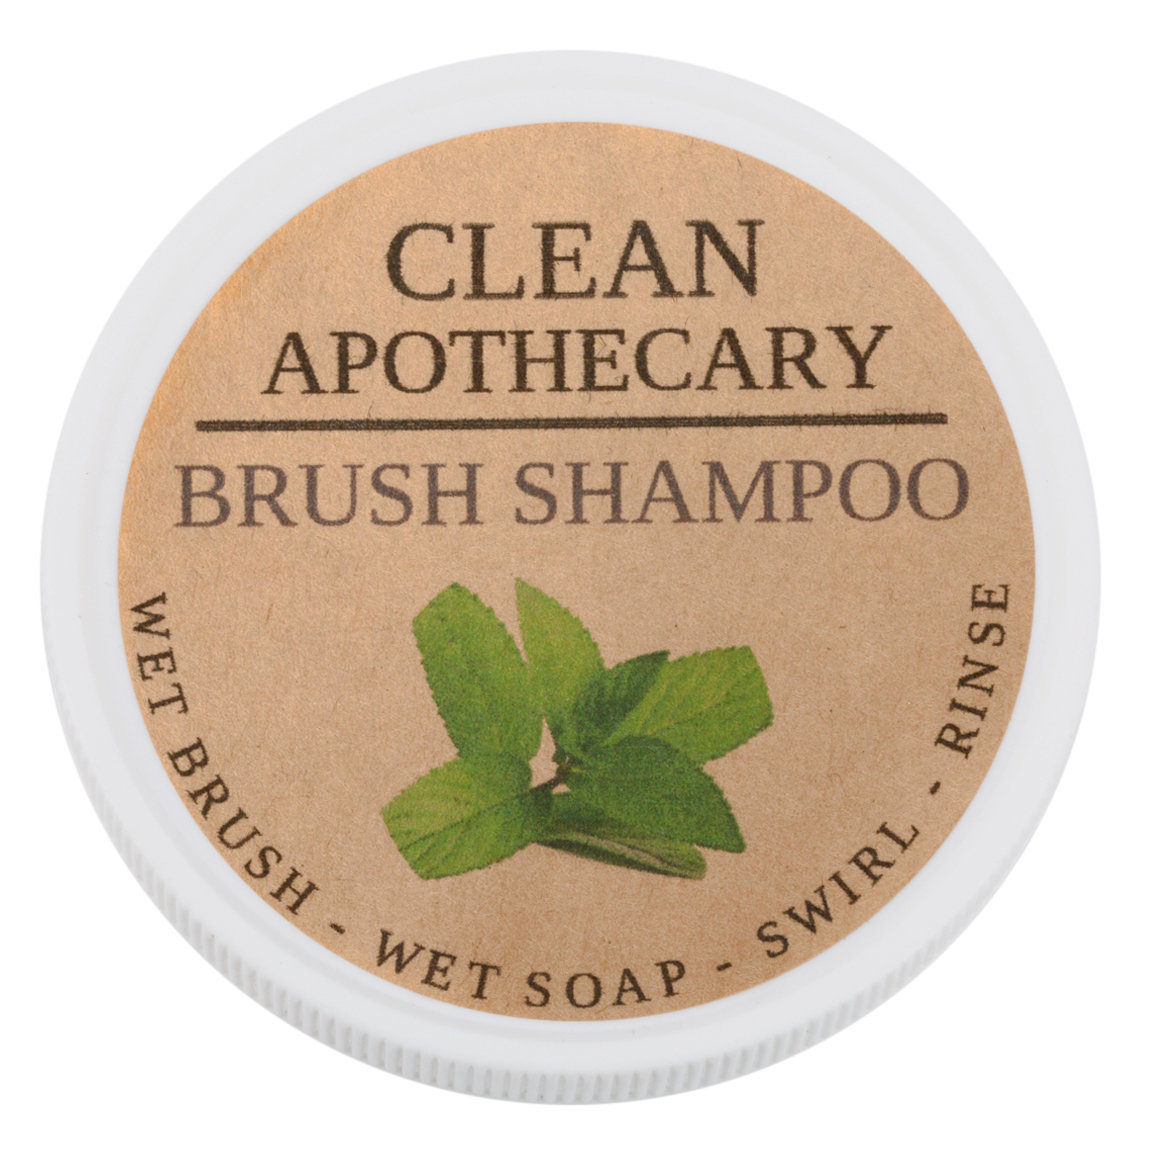 Clean Apothecary Brush Shampoo Spearmint product swatch.